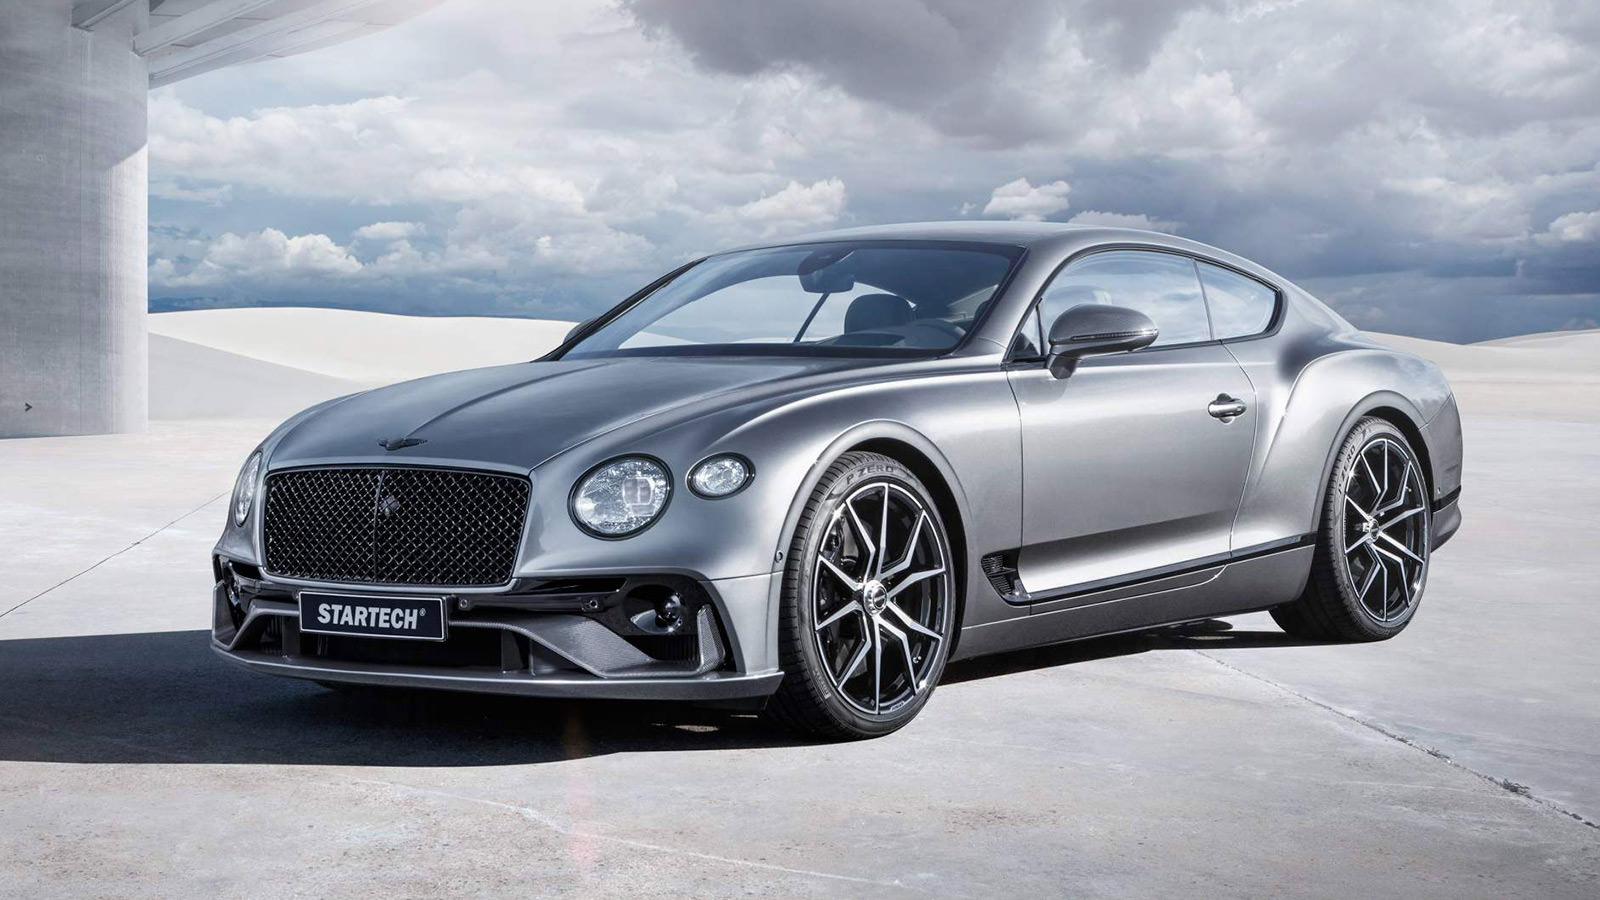 Startech Bentley Continental GT